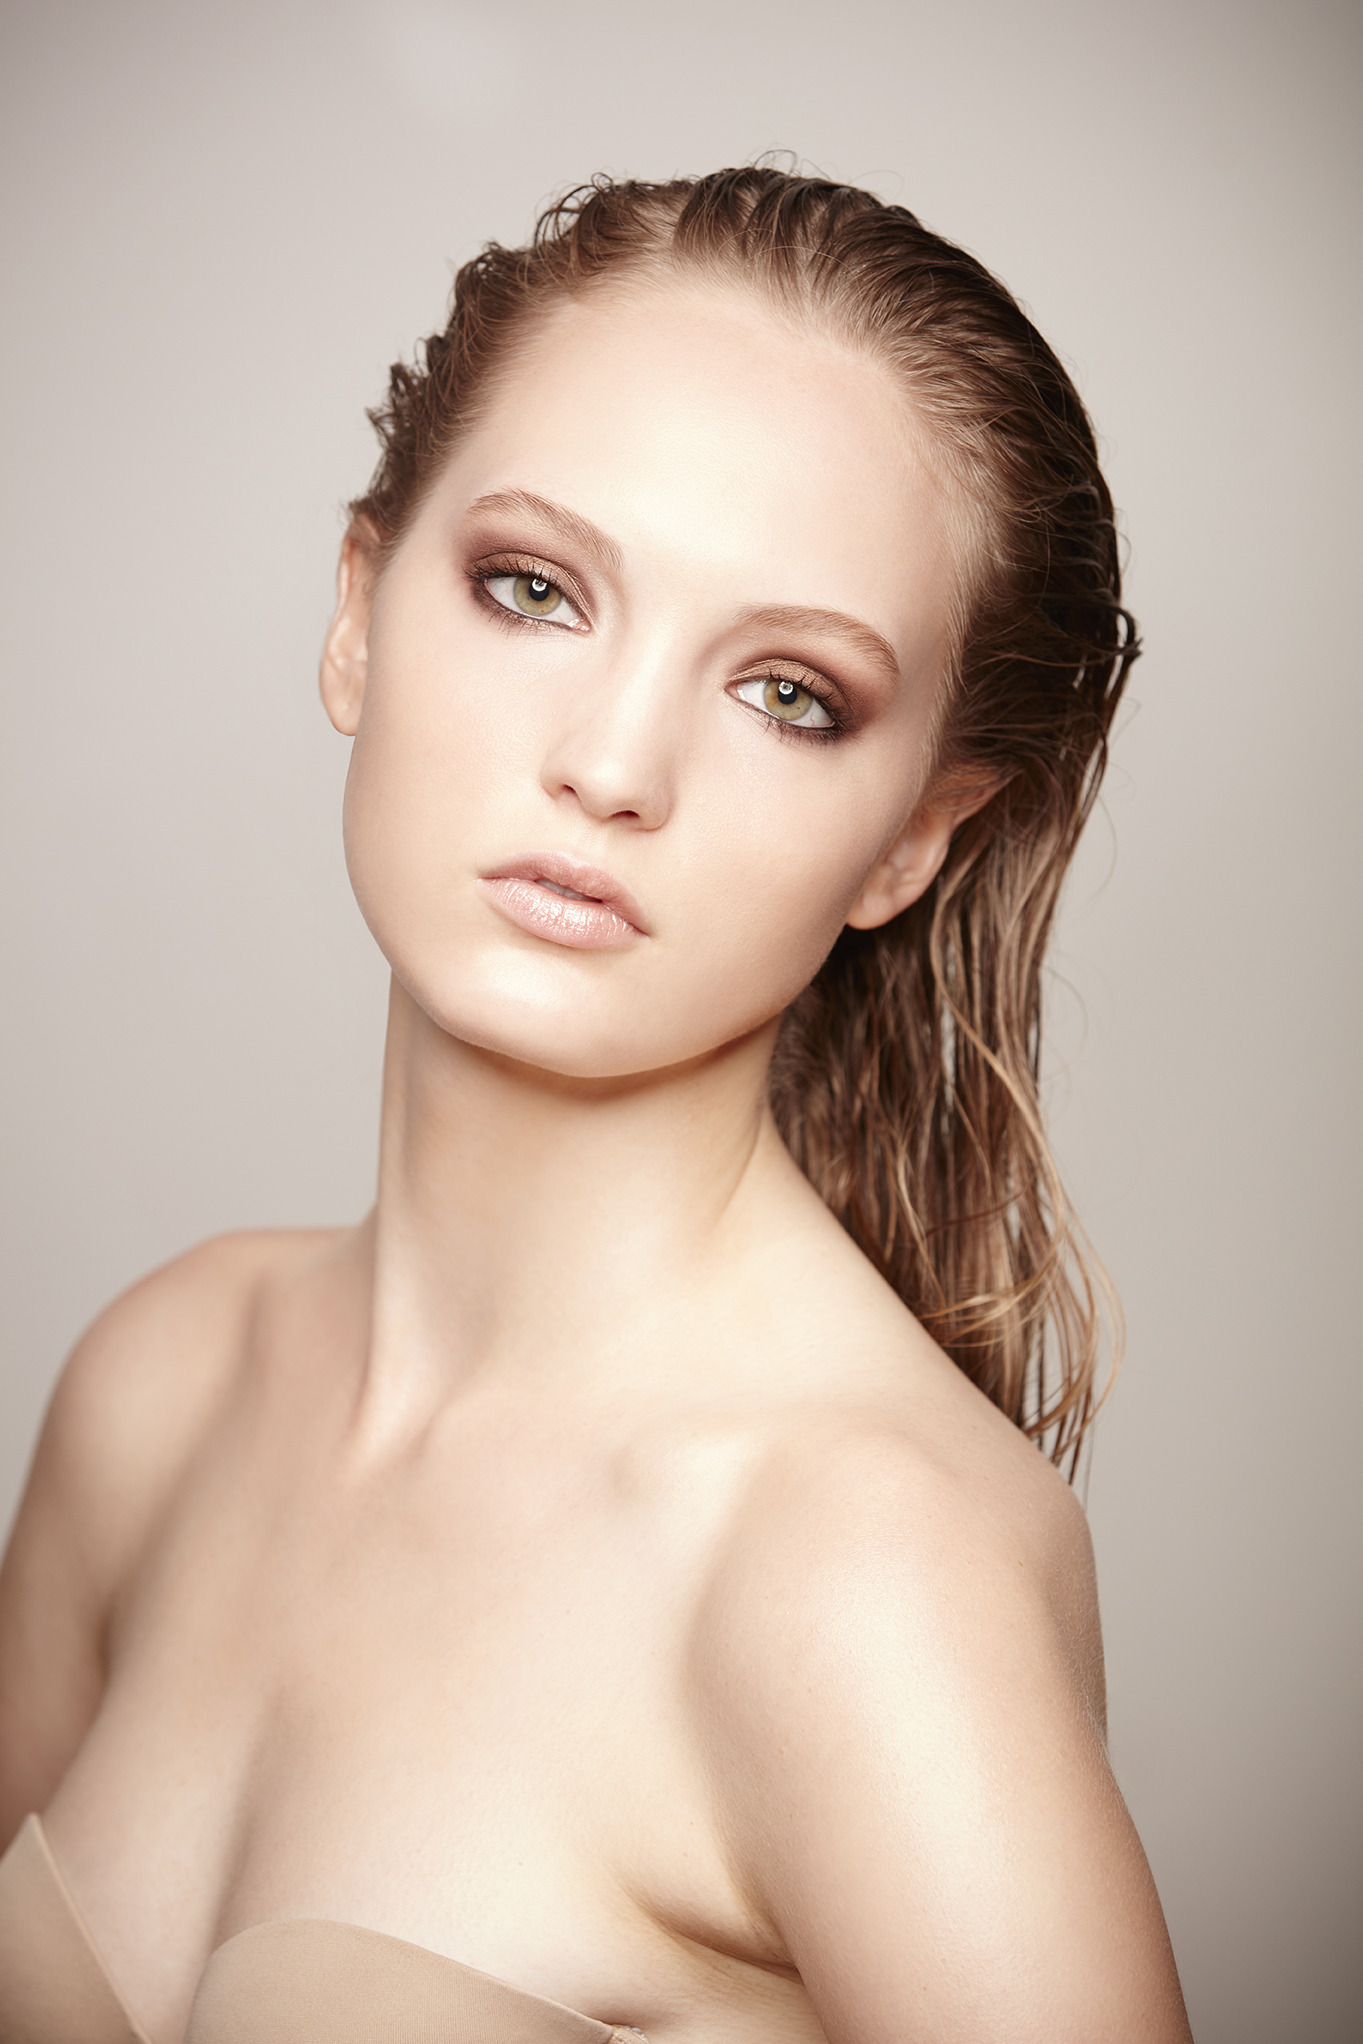 retouched woman in strapless bra with wet hair and neutral makeup